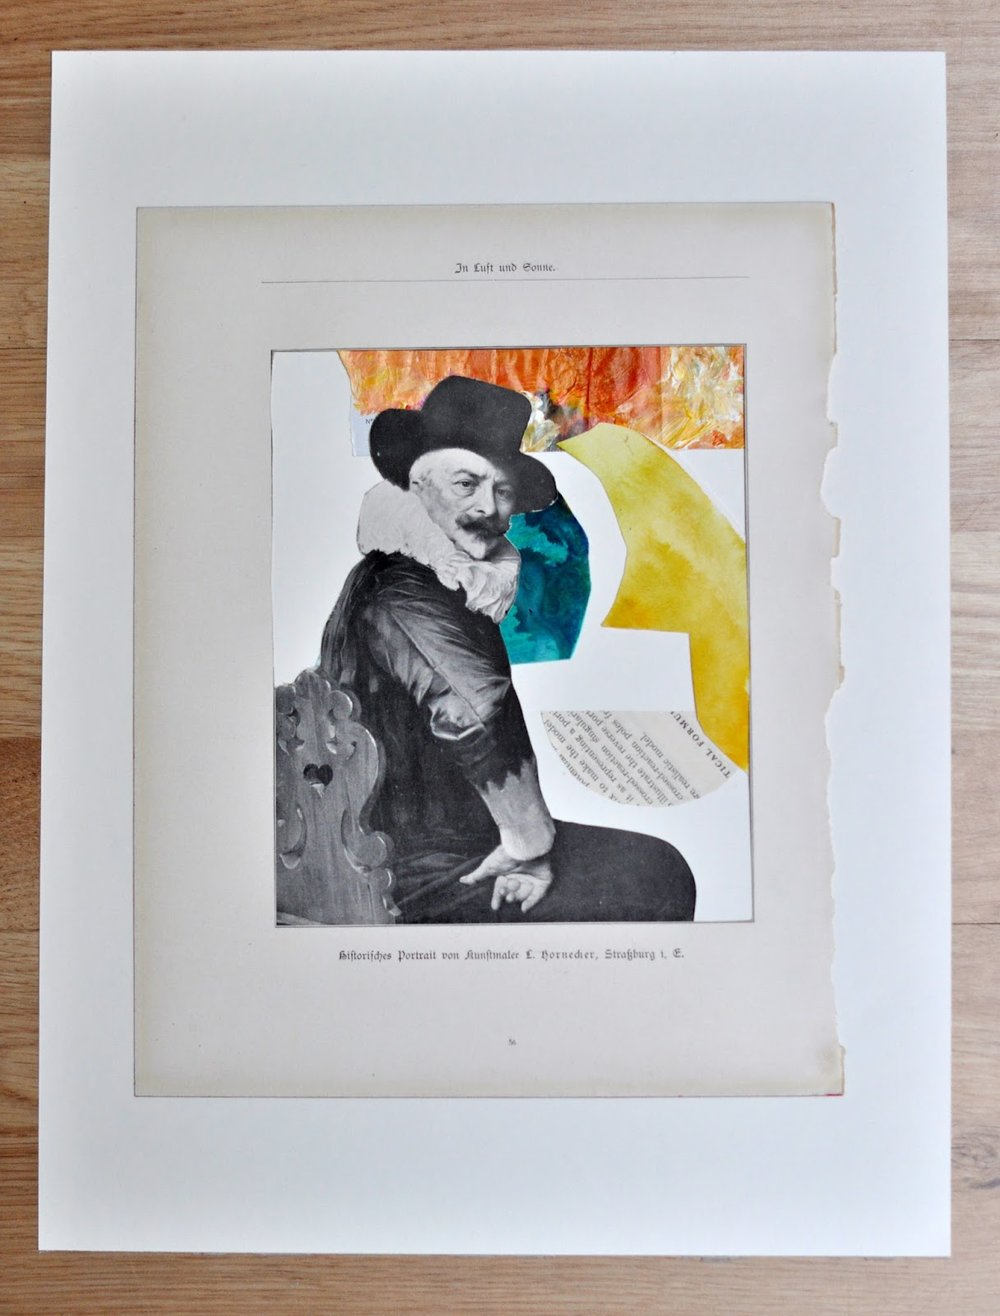 acrylic, paint, portraiture, realistic, book, vintage, found object, german, collage, bookpages, abstract, figurative